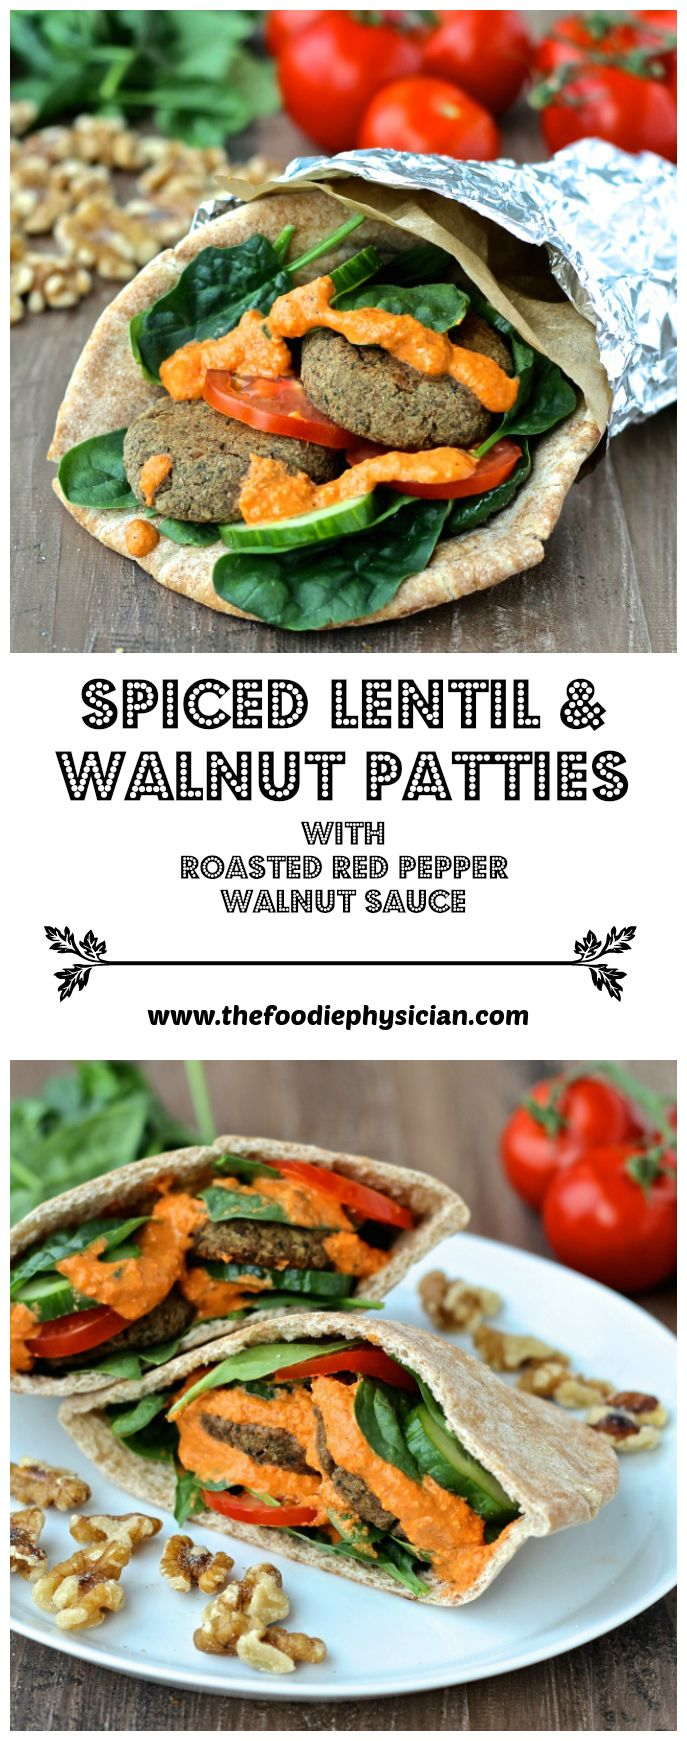 These tasty vegetarian patties are nutritious and satisfying- the ...